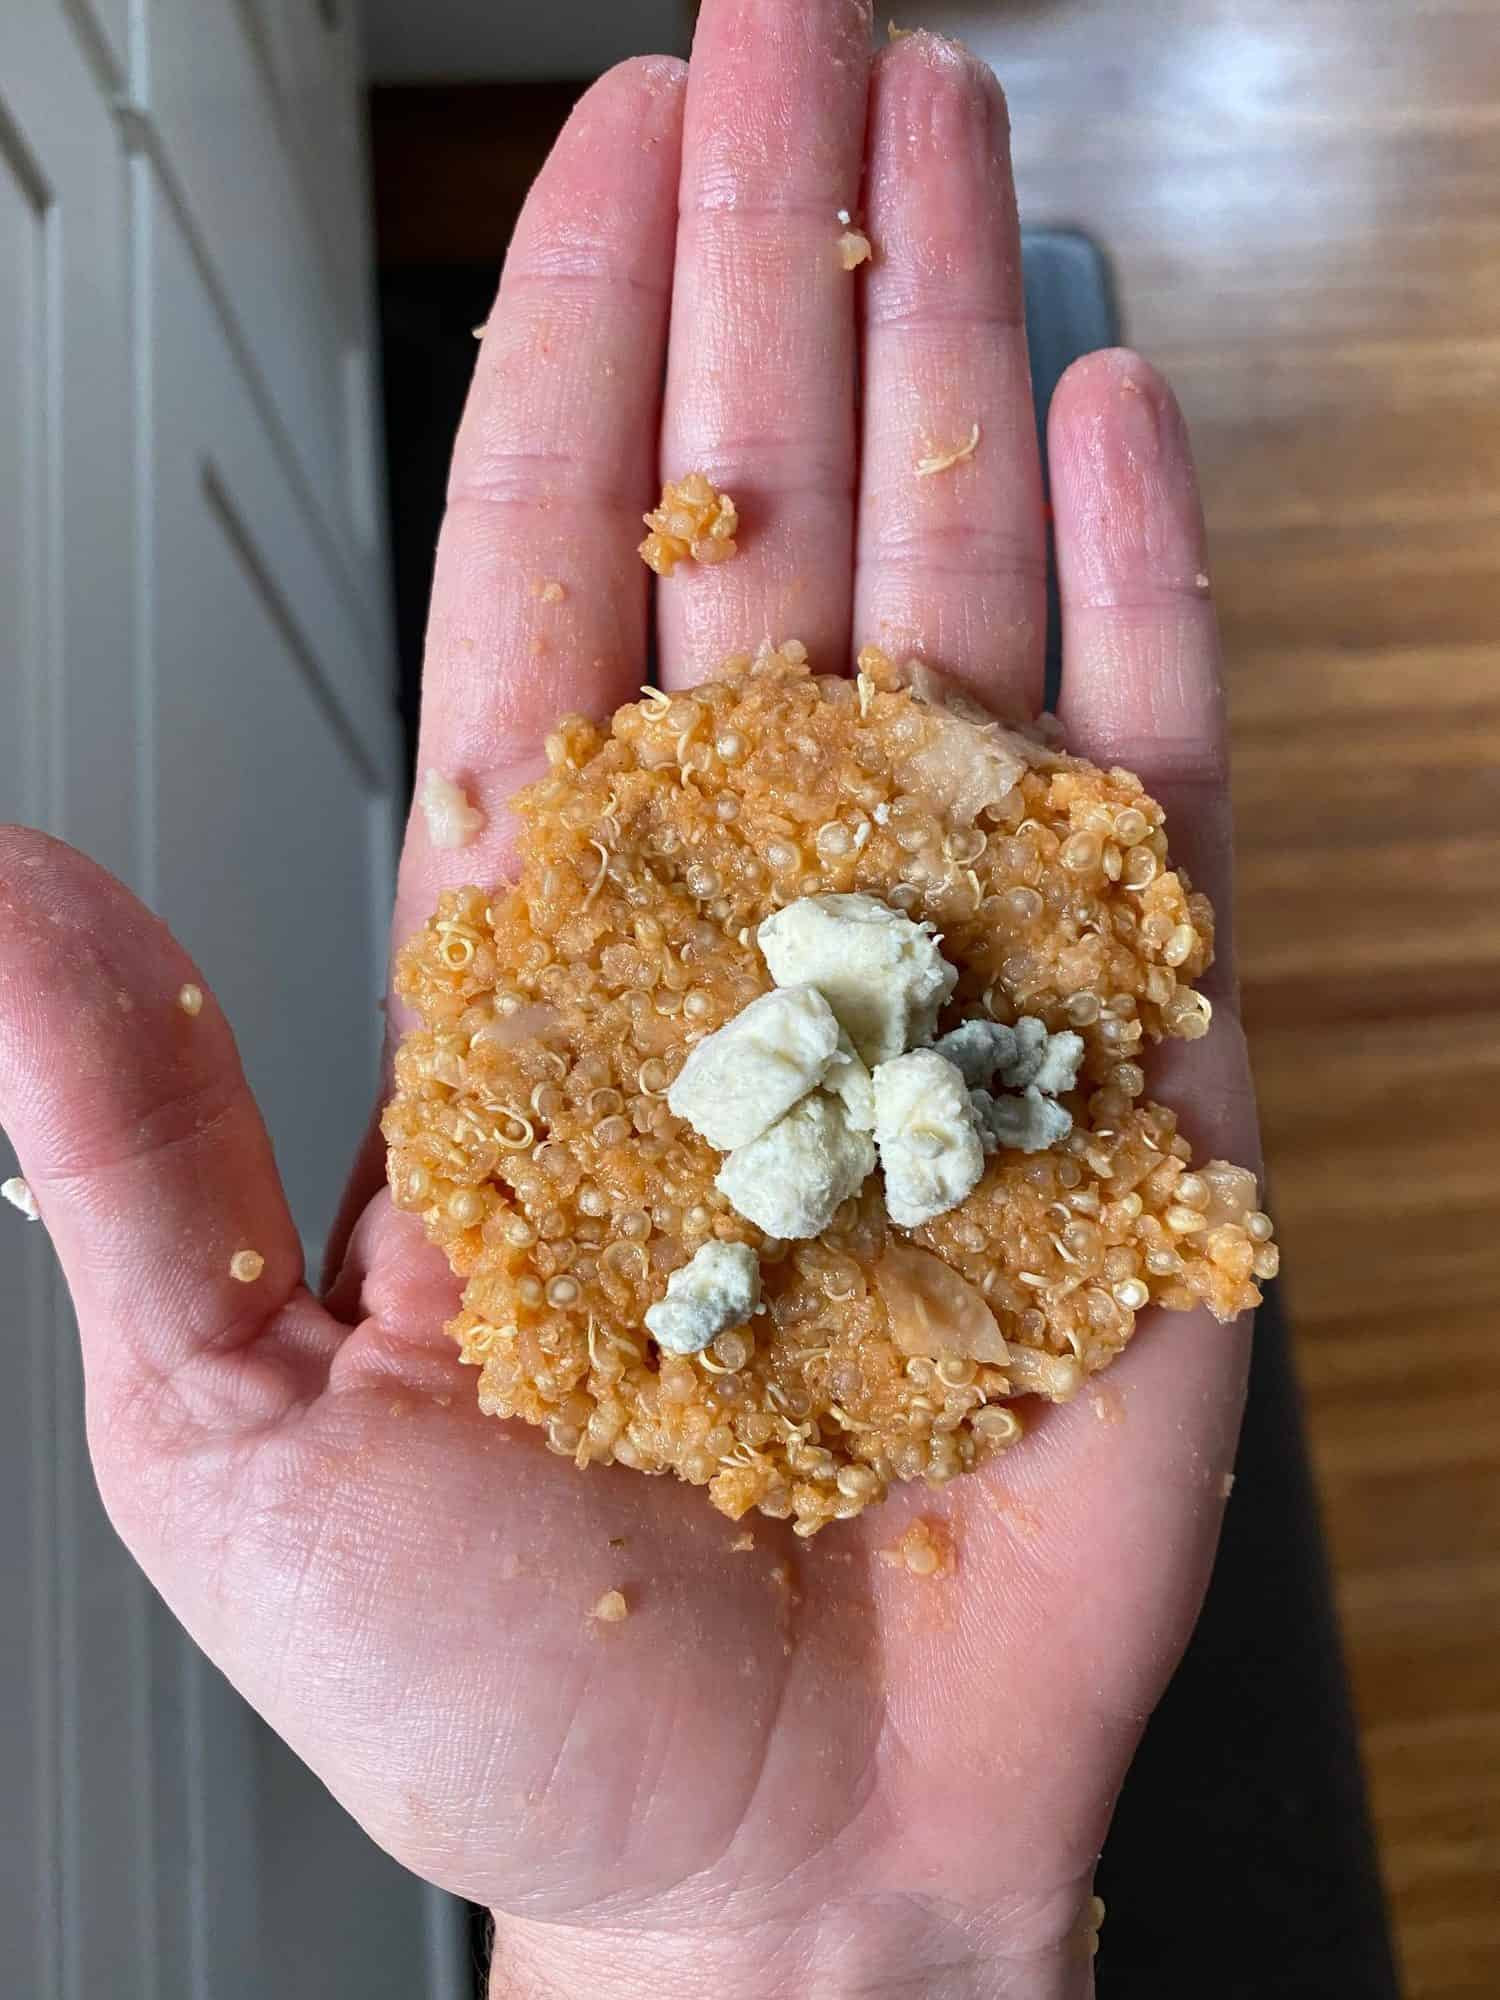 hand holding a patty of quinoa mix with blue cheese crumbles in the center